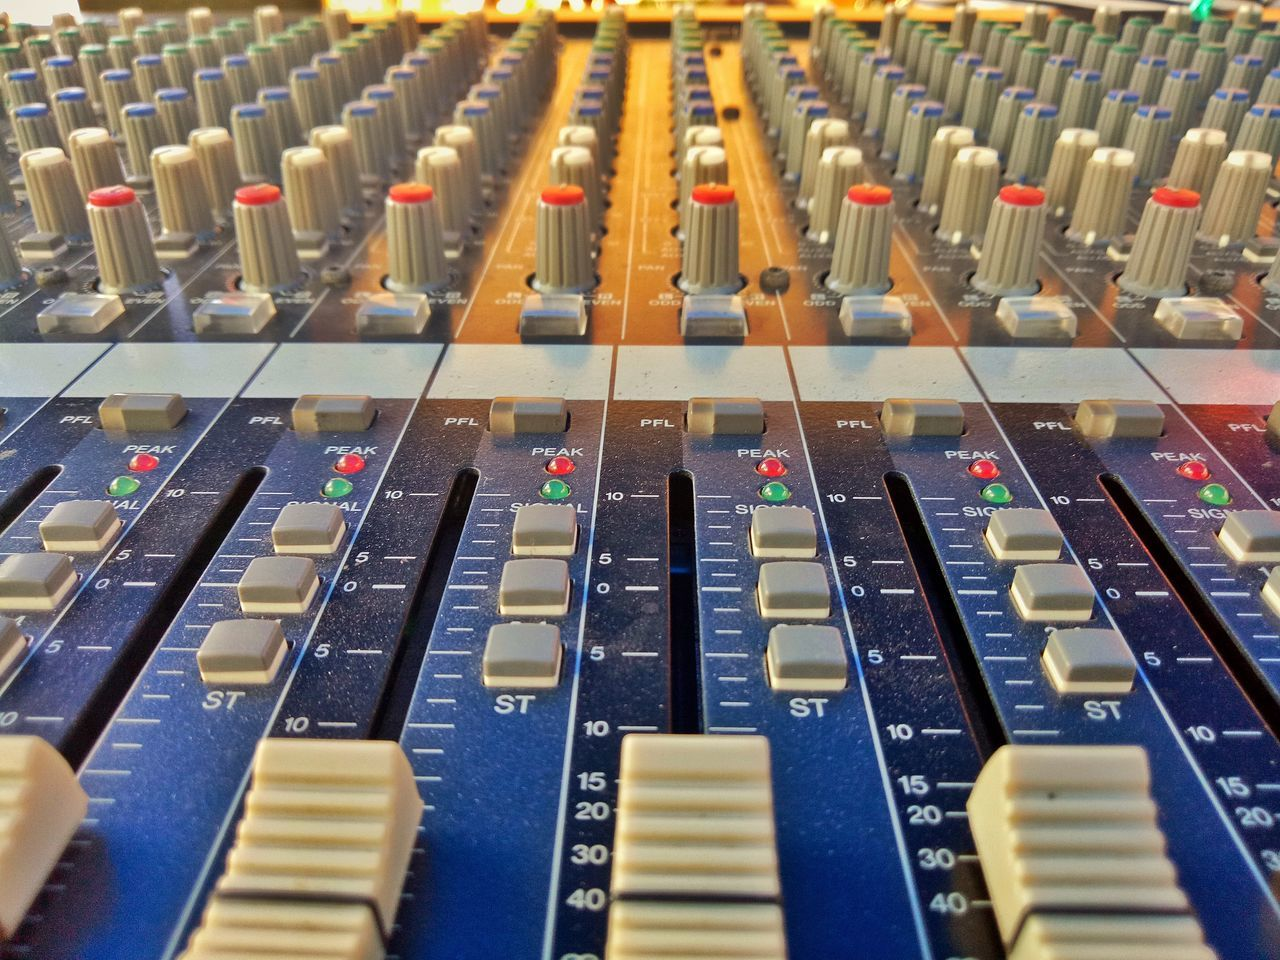 Sound Mixer Sound Recording Equipment Recording Studio Mixing Music Control Control Panel Broadcasting Audio Equipment Studio Close-up Knob Technology Arts Culture And Entertainment Indoors  No People Radio Station Day